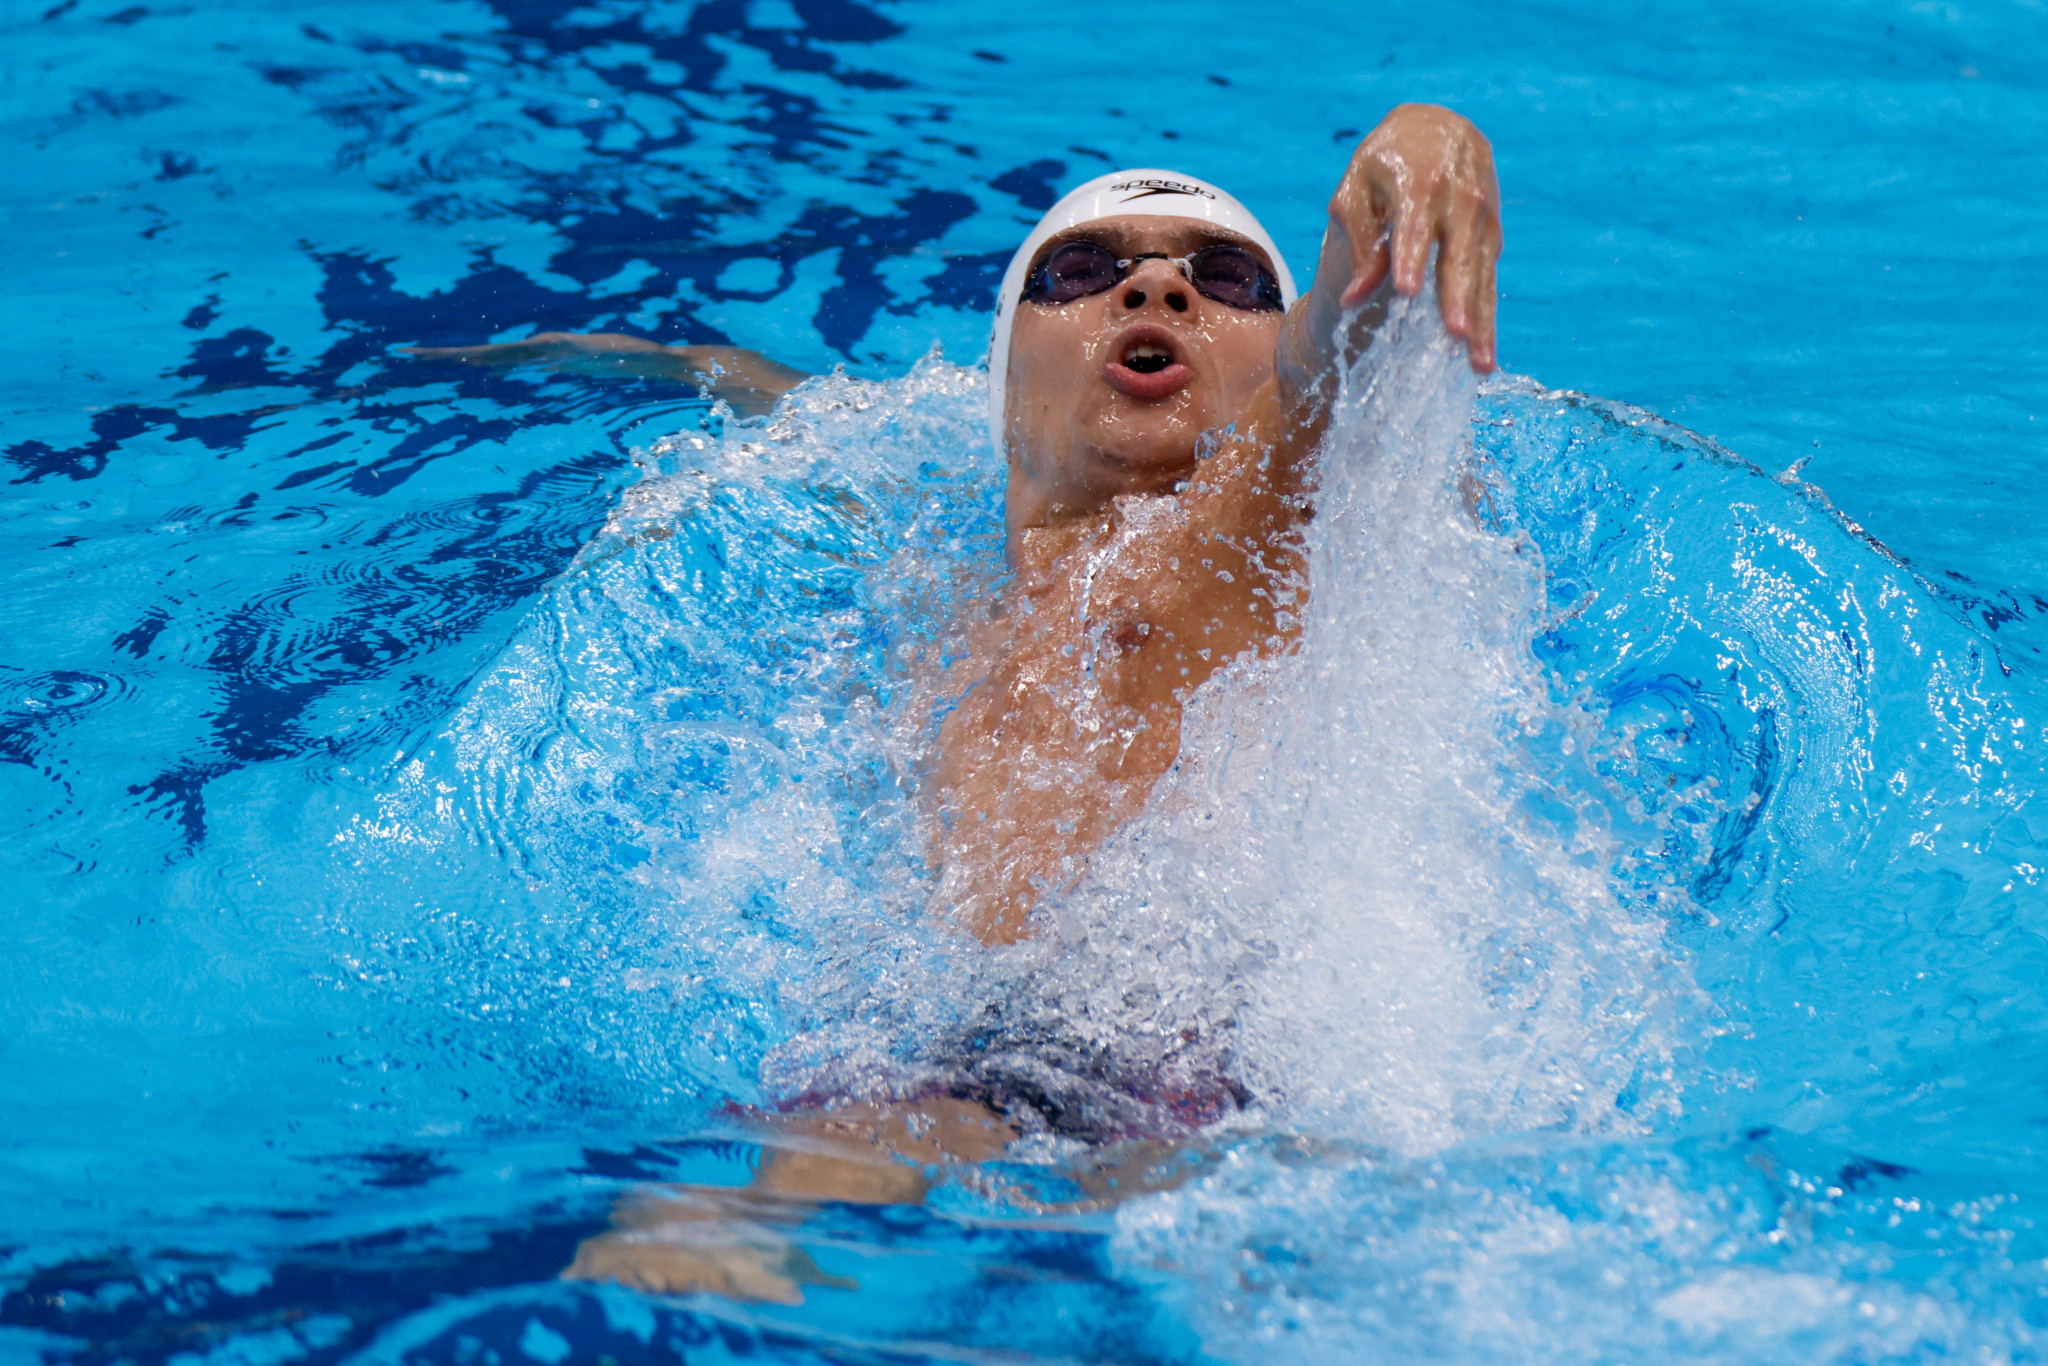 Evgeny Rylov has said that his hero is five-time Olympic champion Aaron Peirsol ©Getty Images